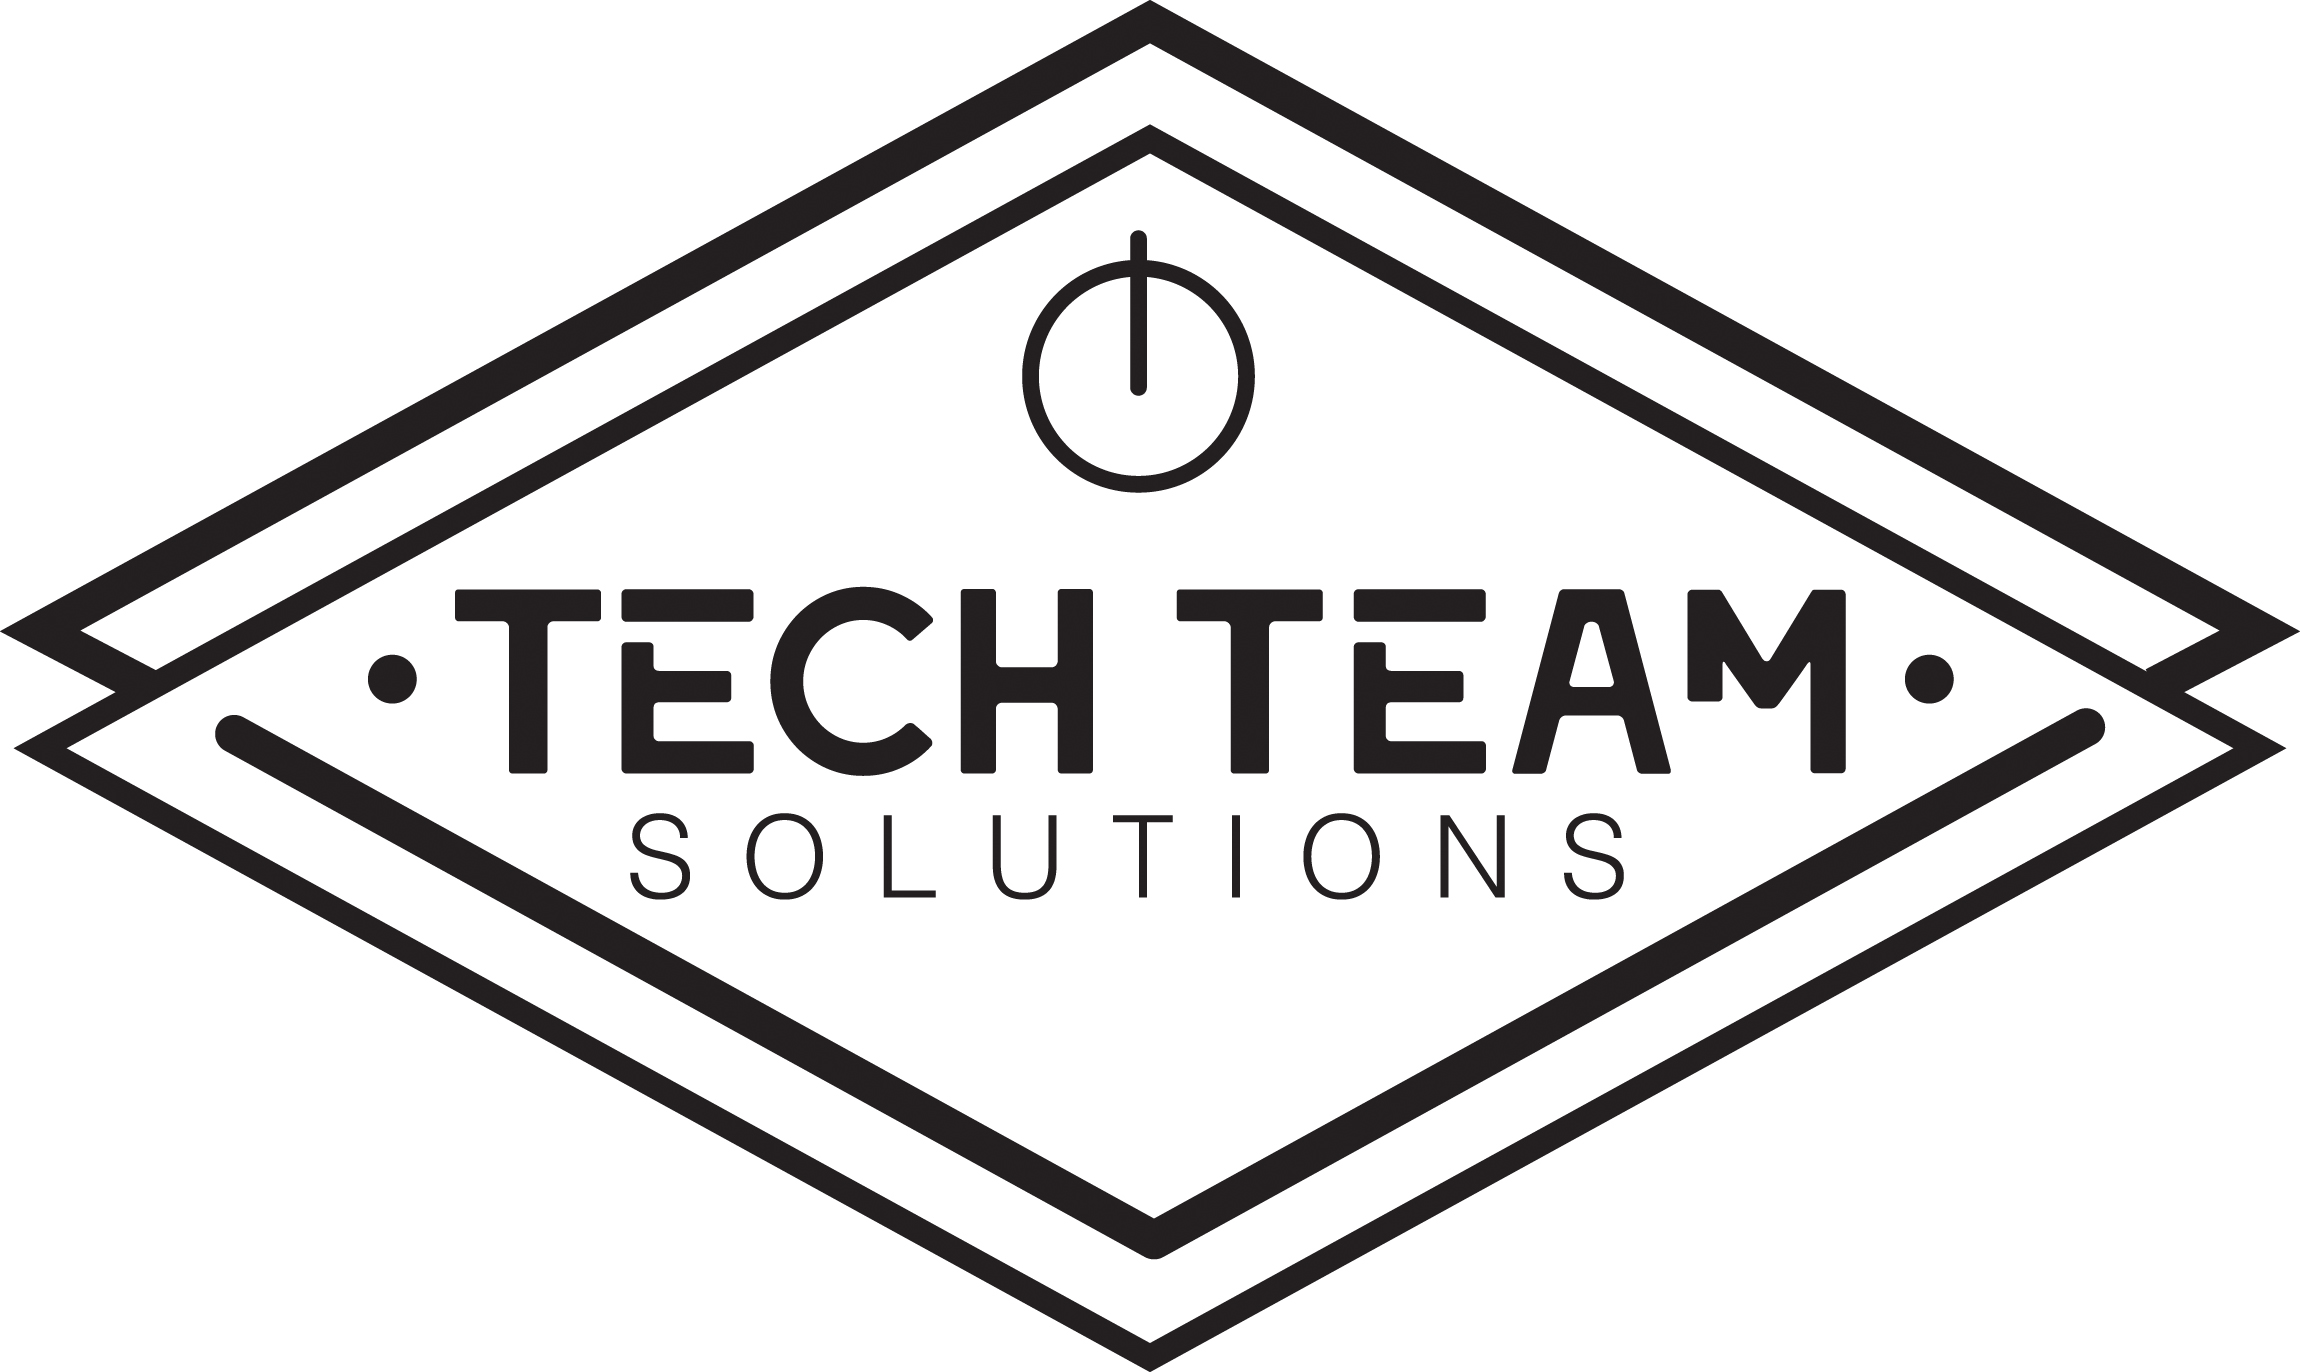 Tech Team Solutions